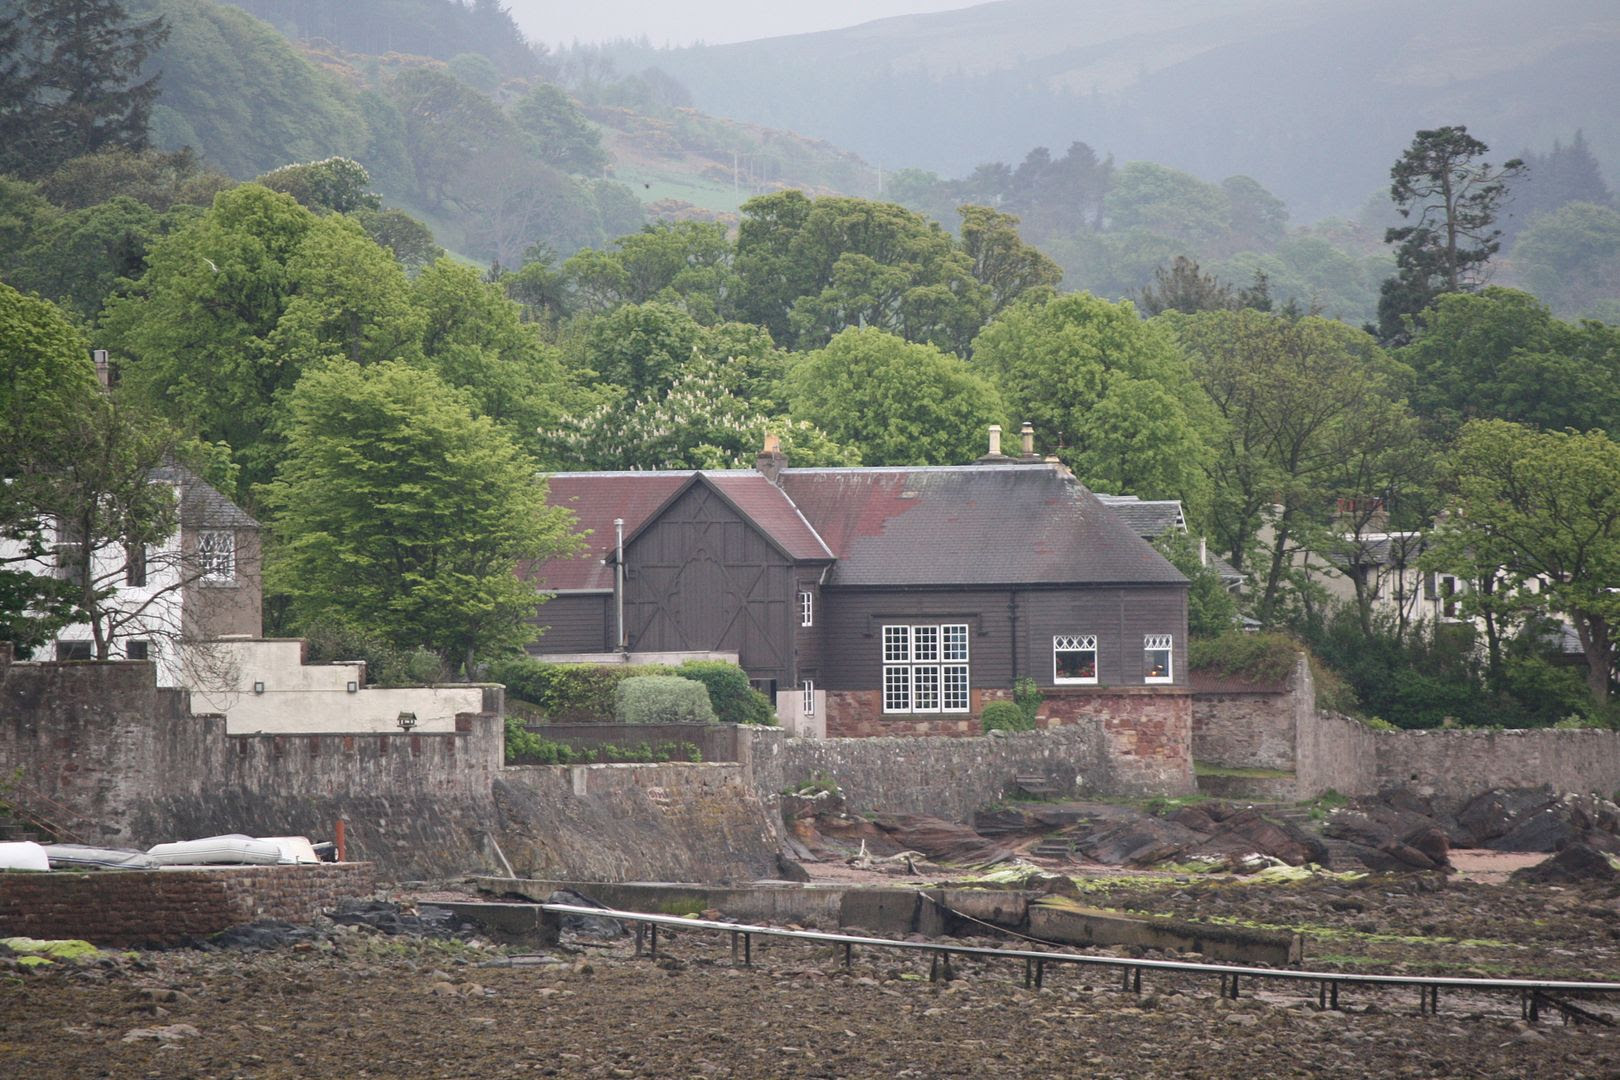 House Near Beach in Fairlie, Scotland photo 2014-05-142005_zps30312189.jpg